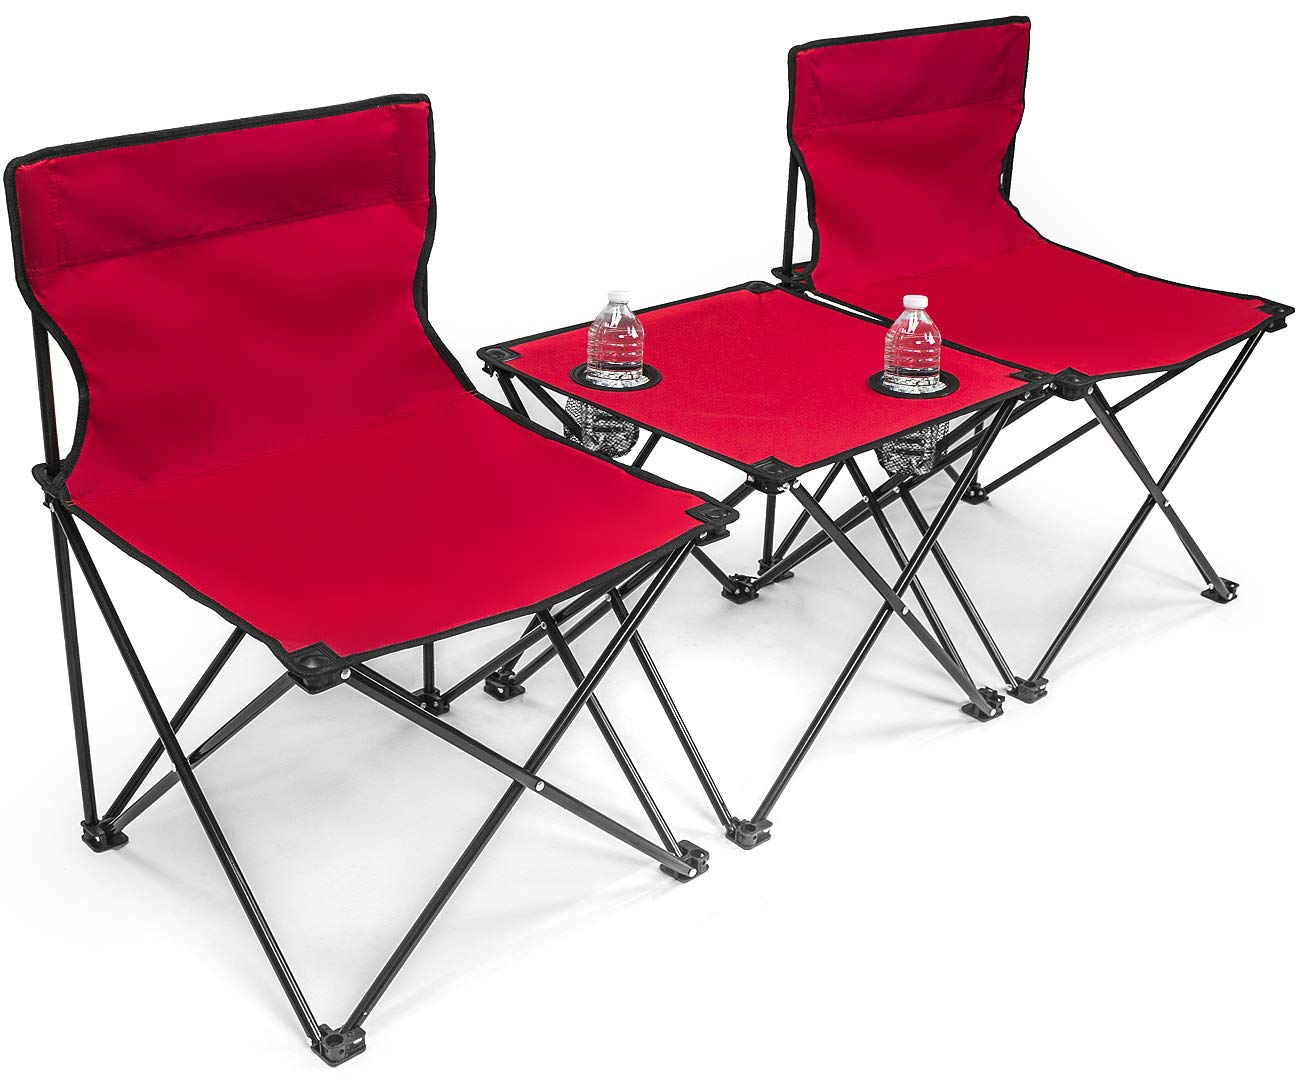 Sorbus Camp Chairs Table Set with Cup Holder Cooler, Foldable Frame, and Portable Carry Bag, Great for Camping, Sporting Events, Beach, Travel, Backyard, Patio, etc (Chair Table Set – Red)